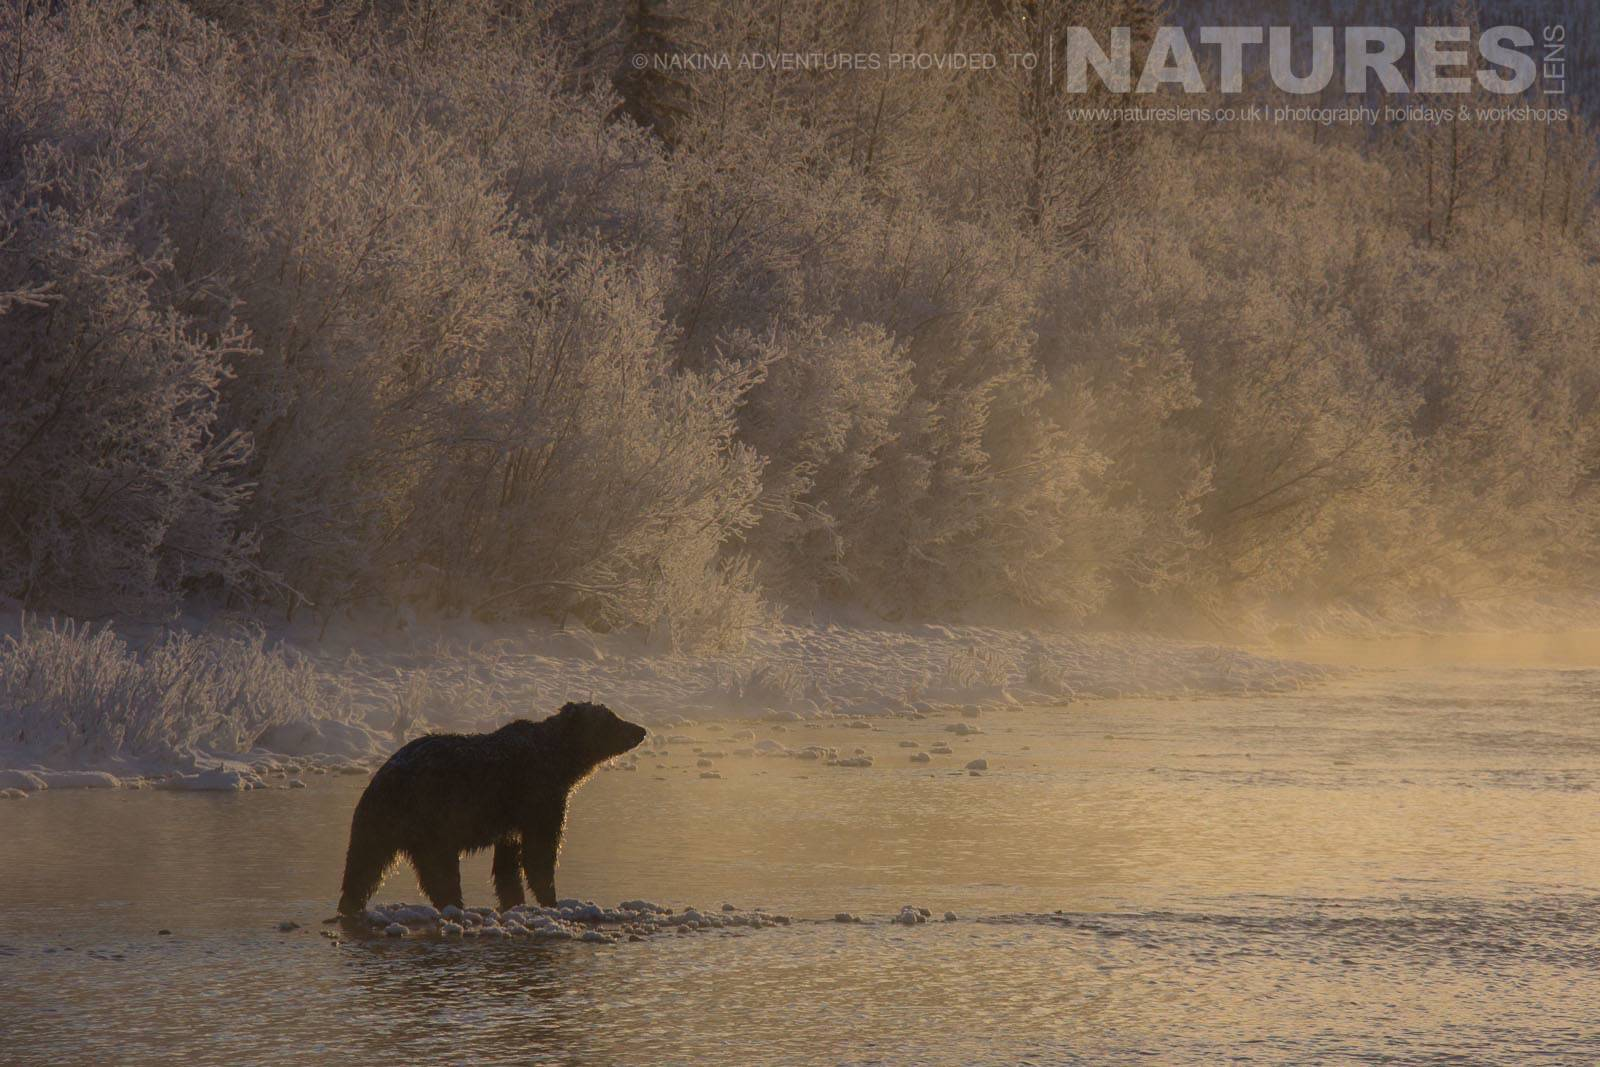 An Atmospheric Image Of A Solitary Bear Of The Yukon On The Fishing Branch River Typical Of The Kind Of Image That May Be Captured On The Ice Bears Of The Yukon Photographic Holiday